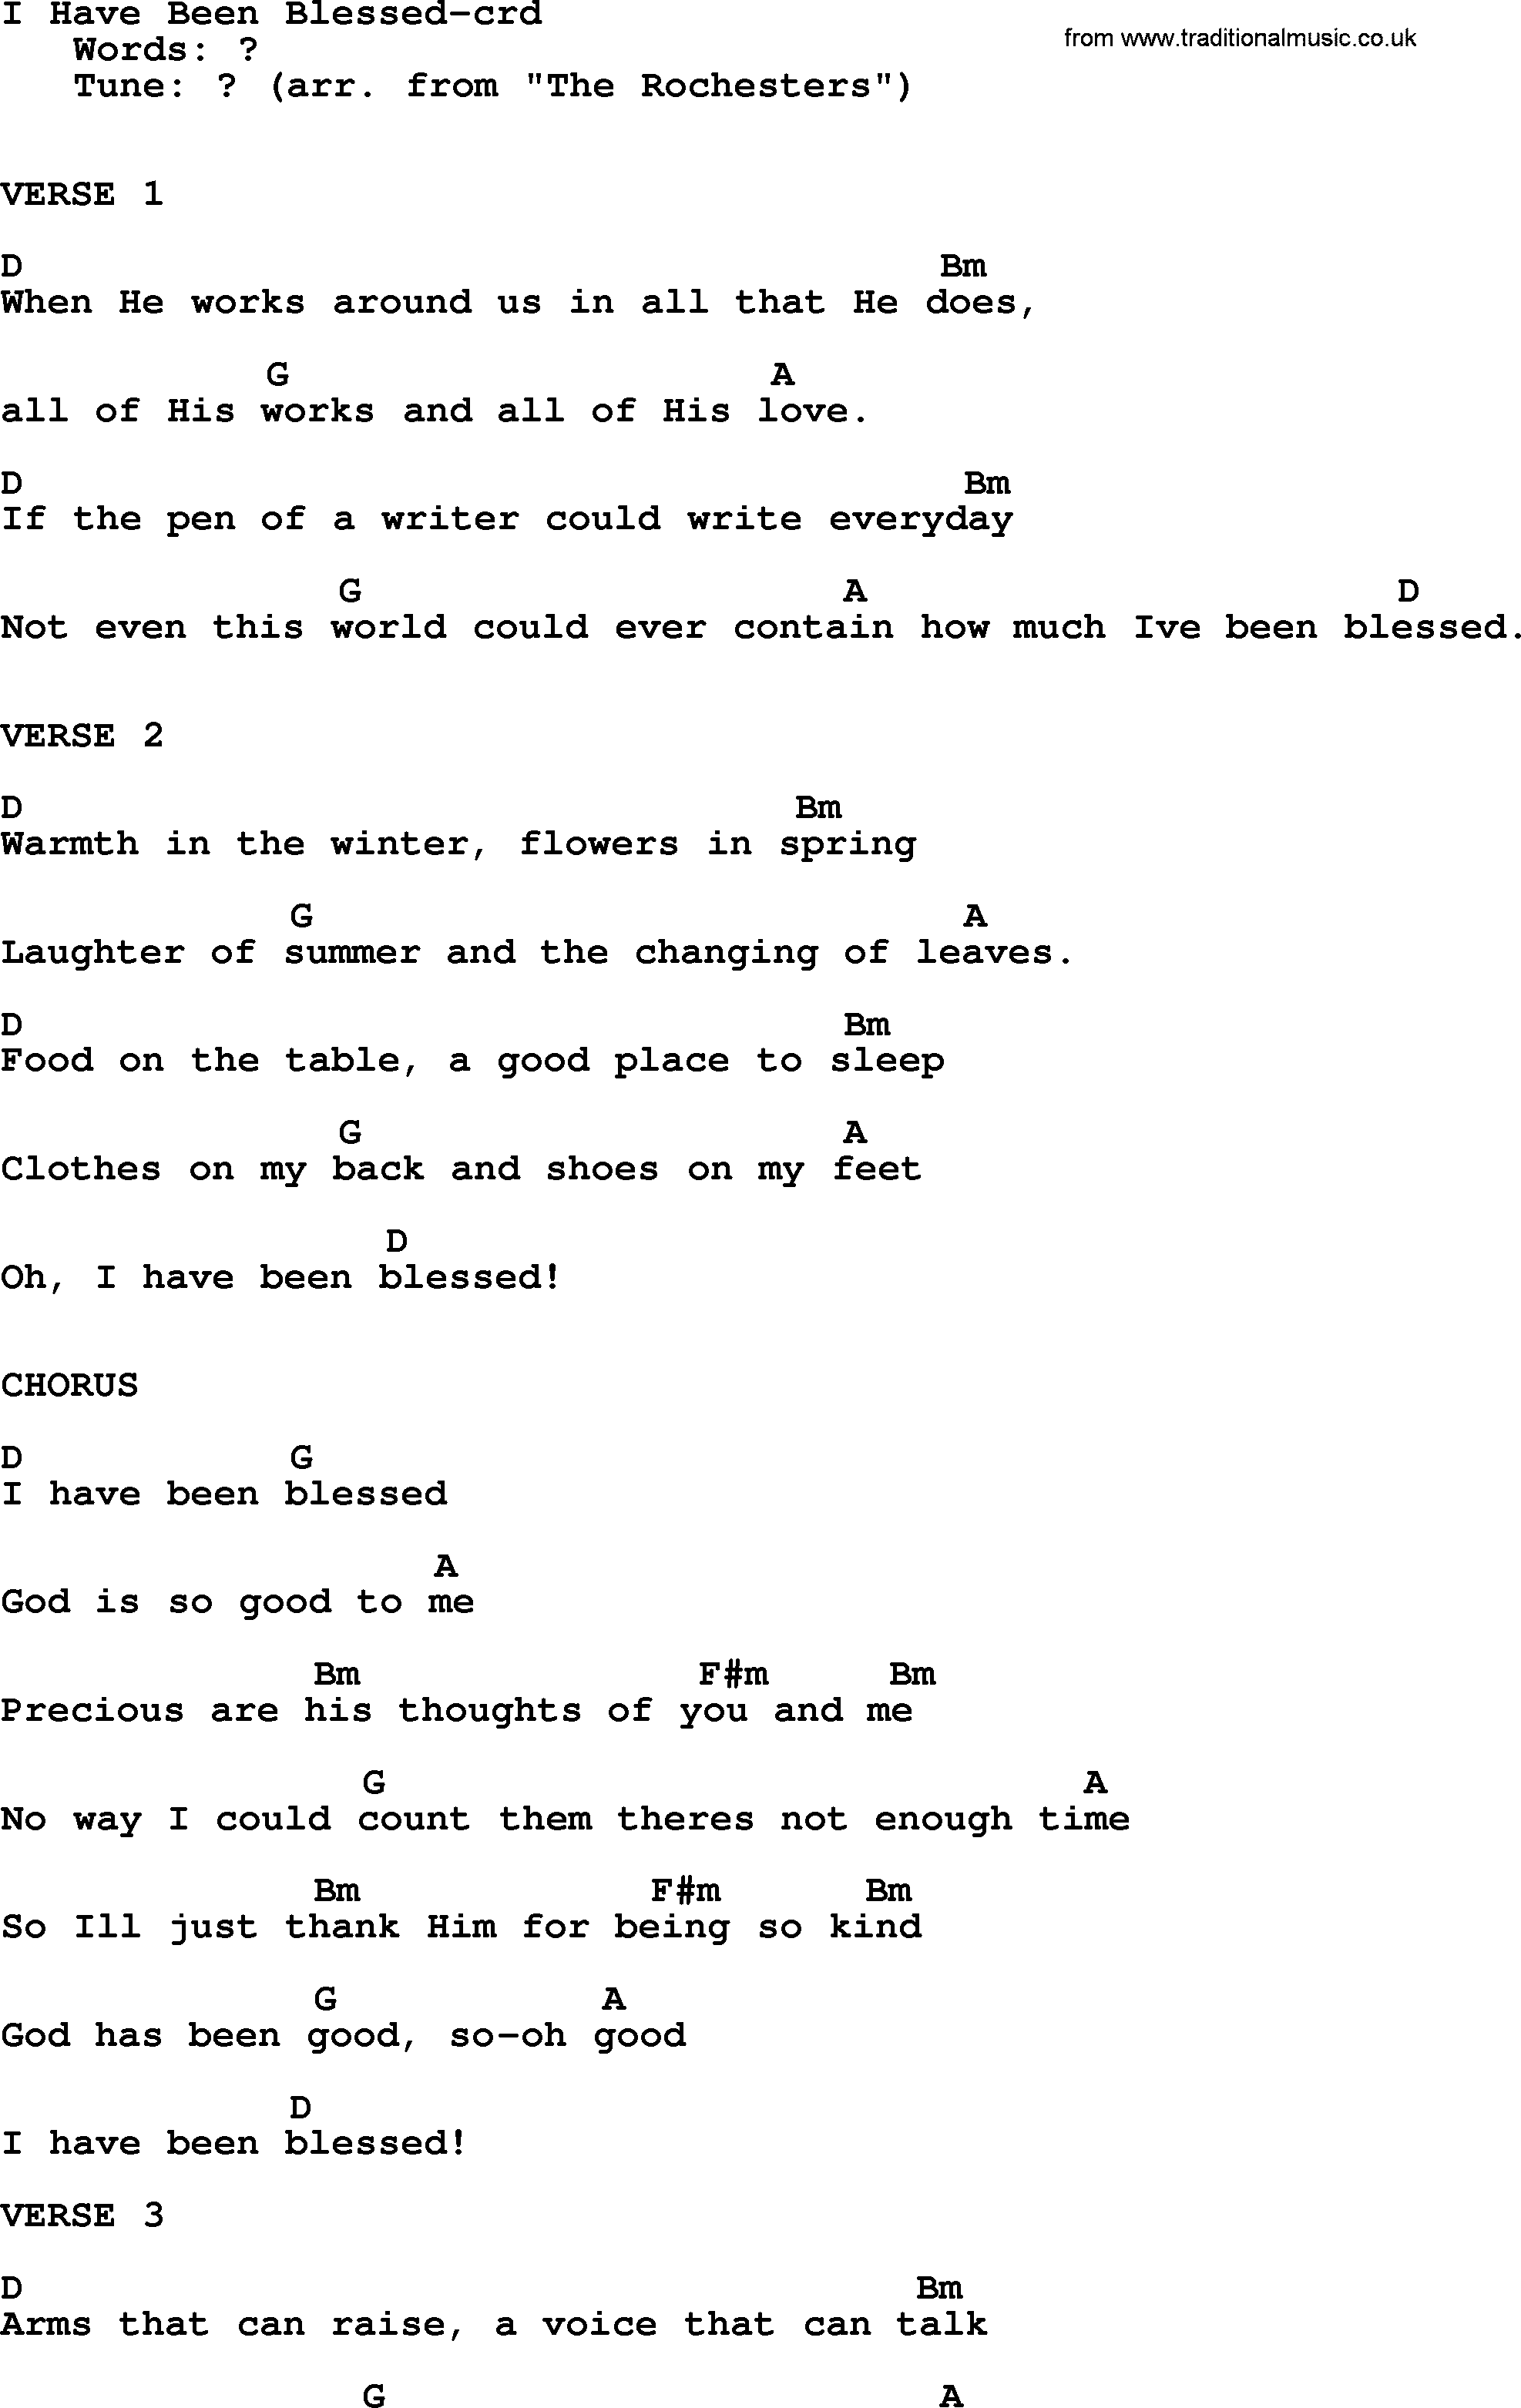 Top 15 Hymn I Have Been Blessed   lyrics, chords and PDF